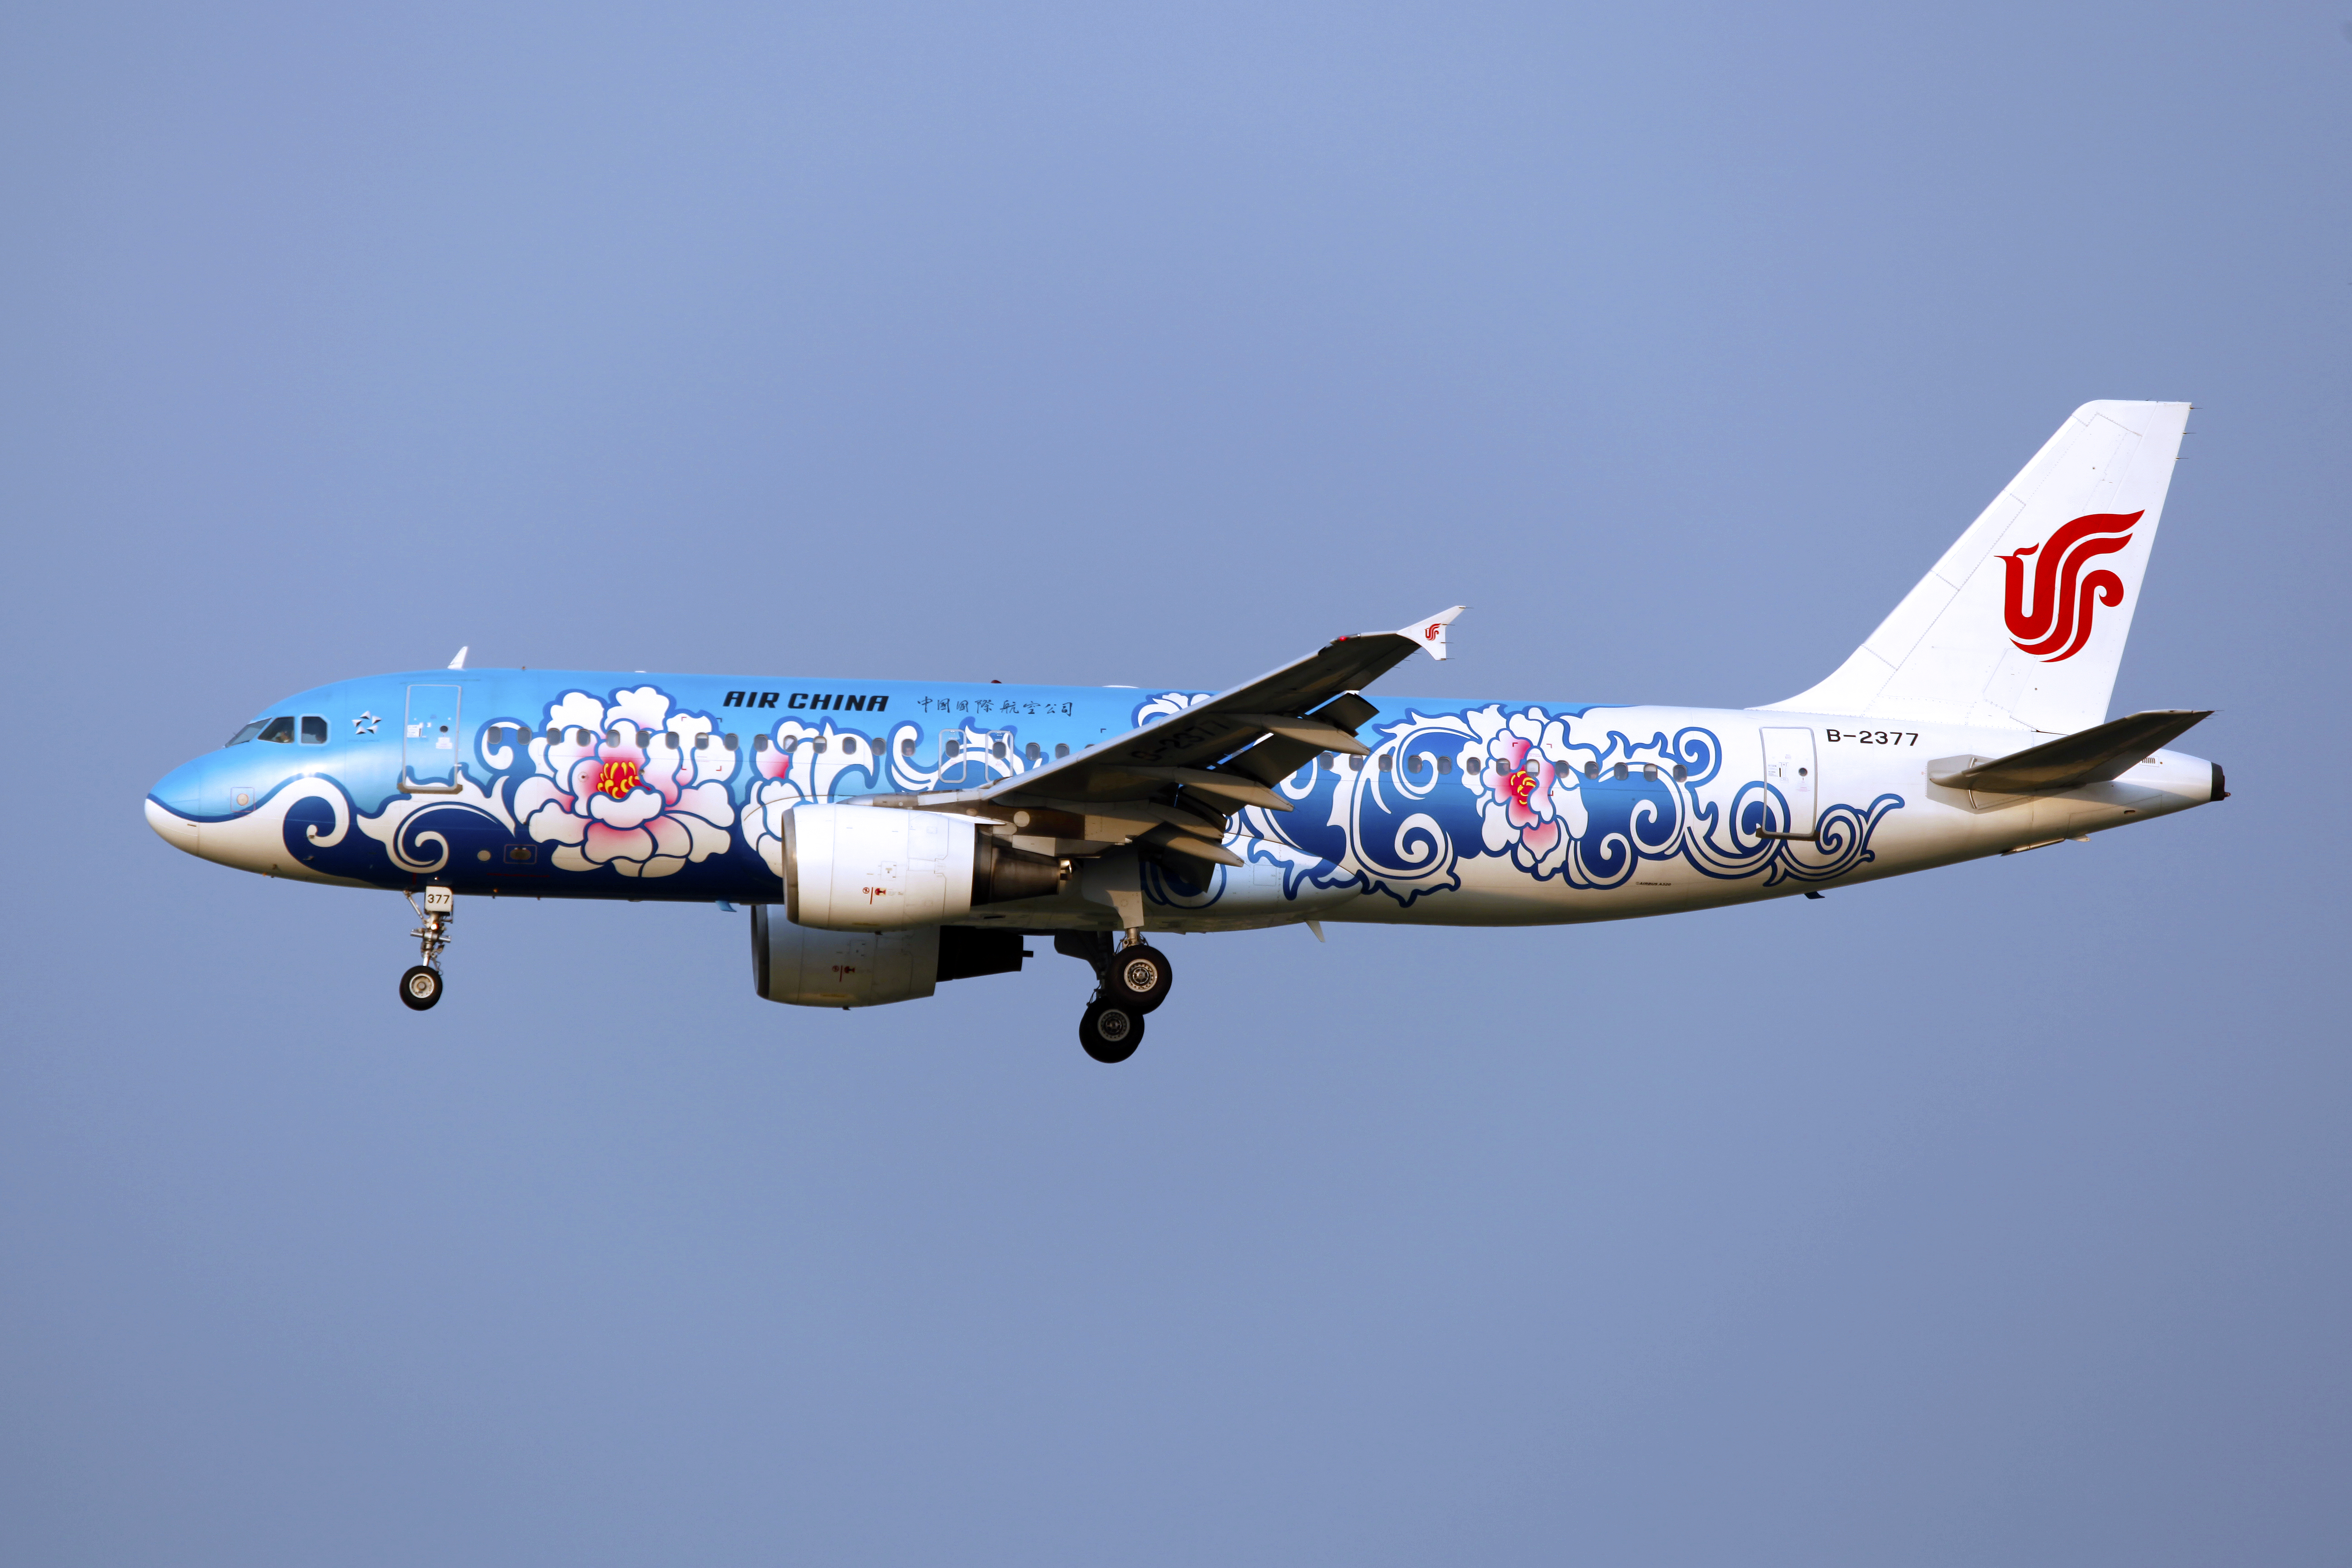 File:B-2377 - Air China - Airbus A320-214 - Blue Peony